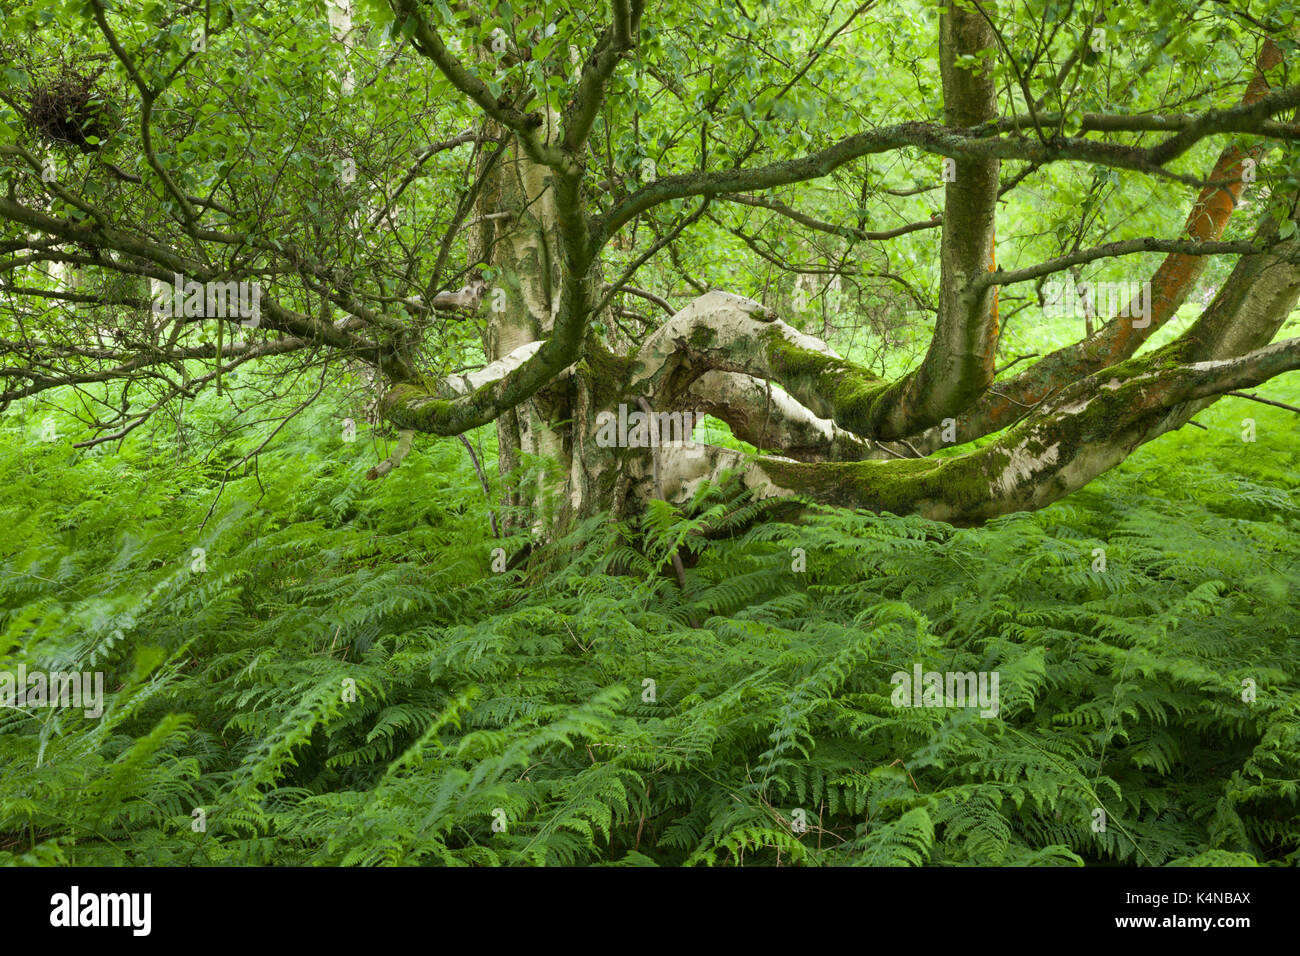 An old silver birch tree (Betula pendula) with spreading moss-covered branches growing among lush green bracken Stock Photo